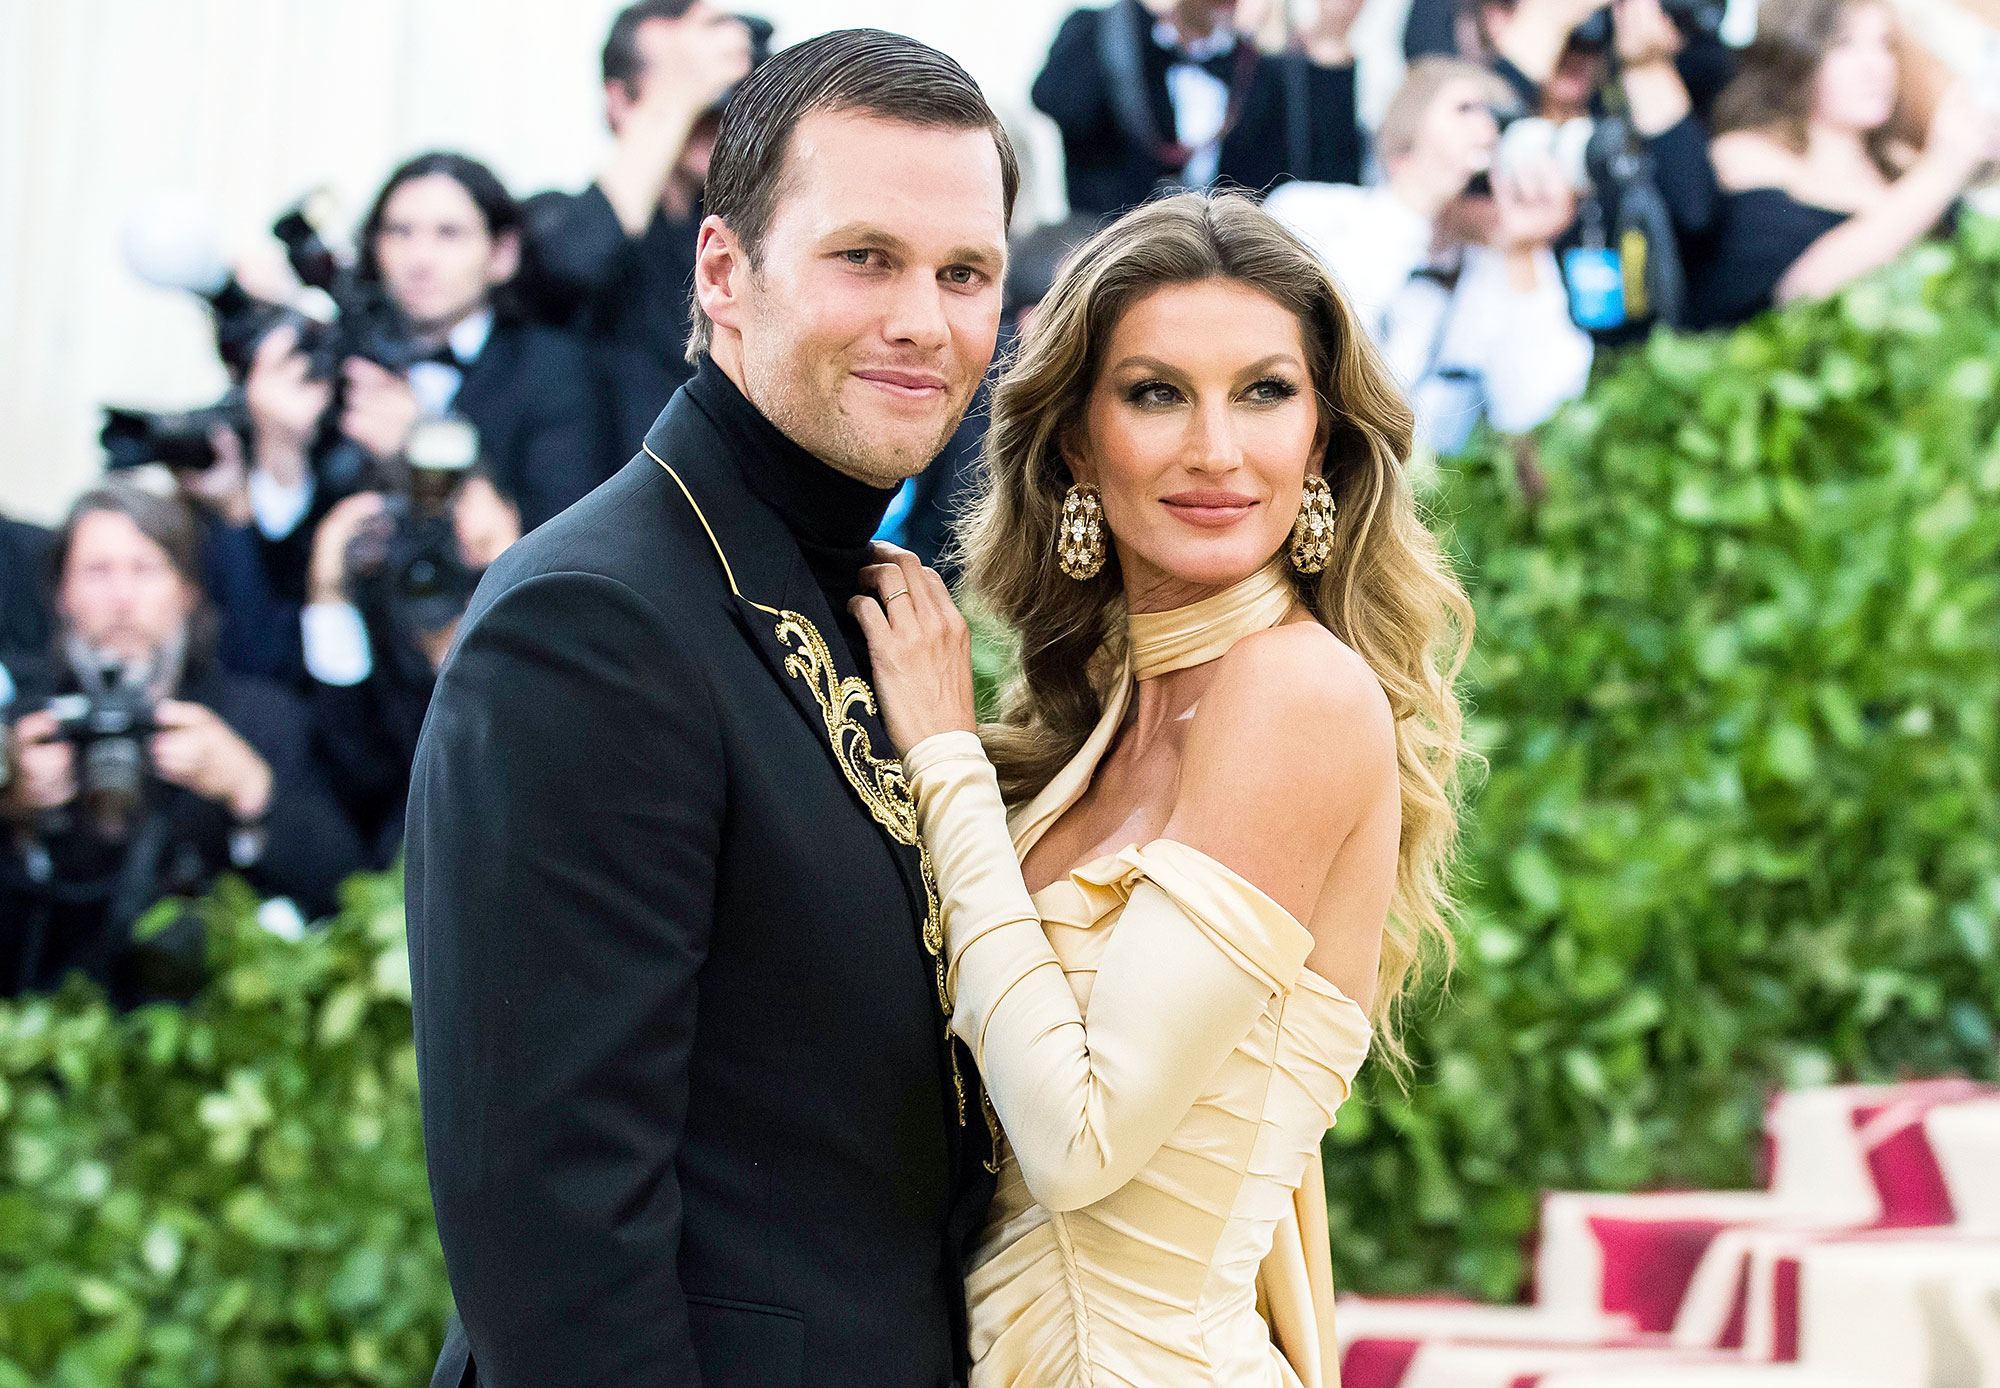 Tom Brady and Gisele Bundchen at the MET Gala Tom Brady Admits He Had to Make Changes When Wife Gisele Bundchen Wasnt Satisfied in Their Marriage